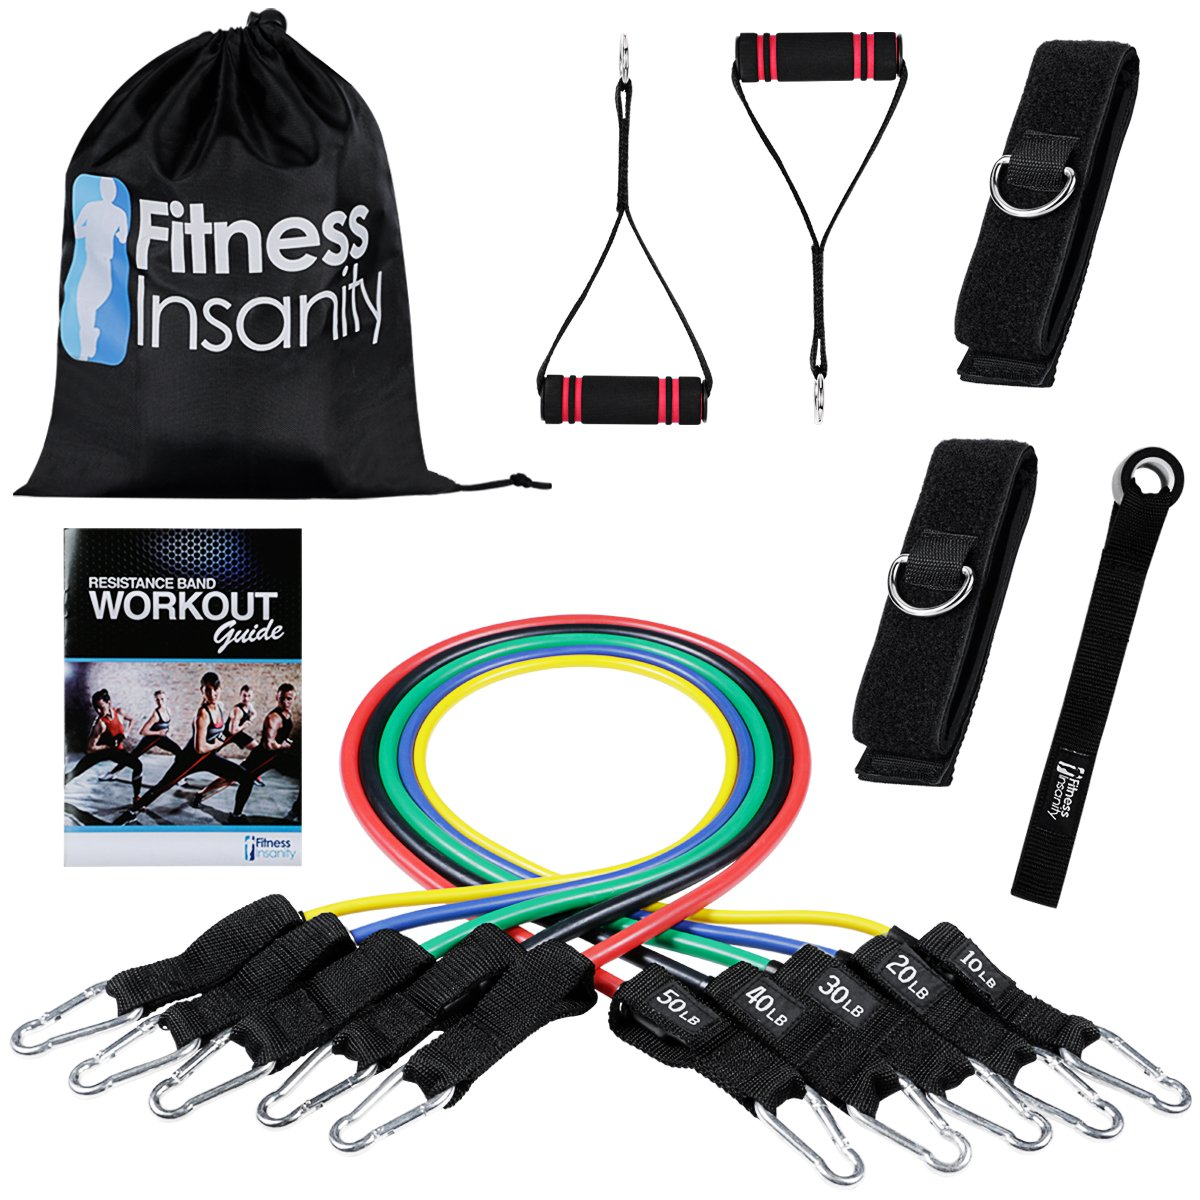 Resistance Band Set - 5 Stackable Exercise Bands